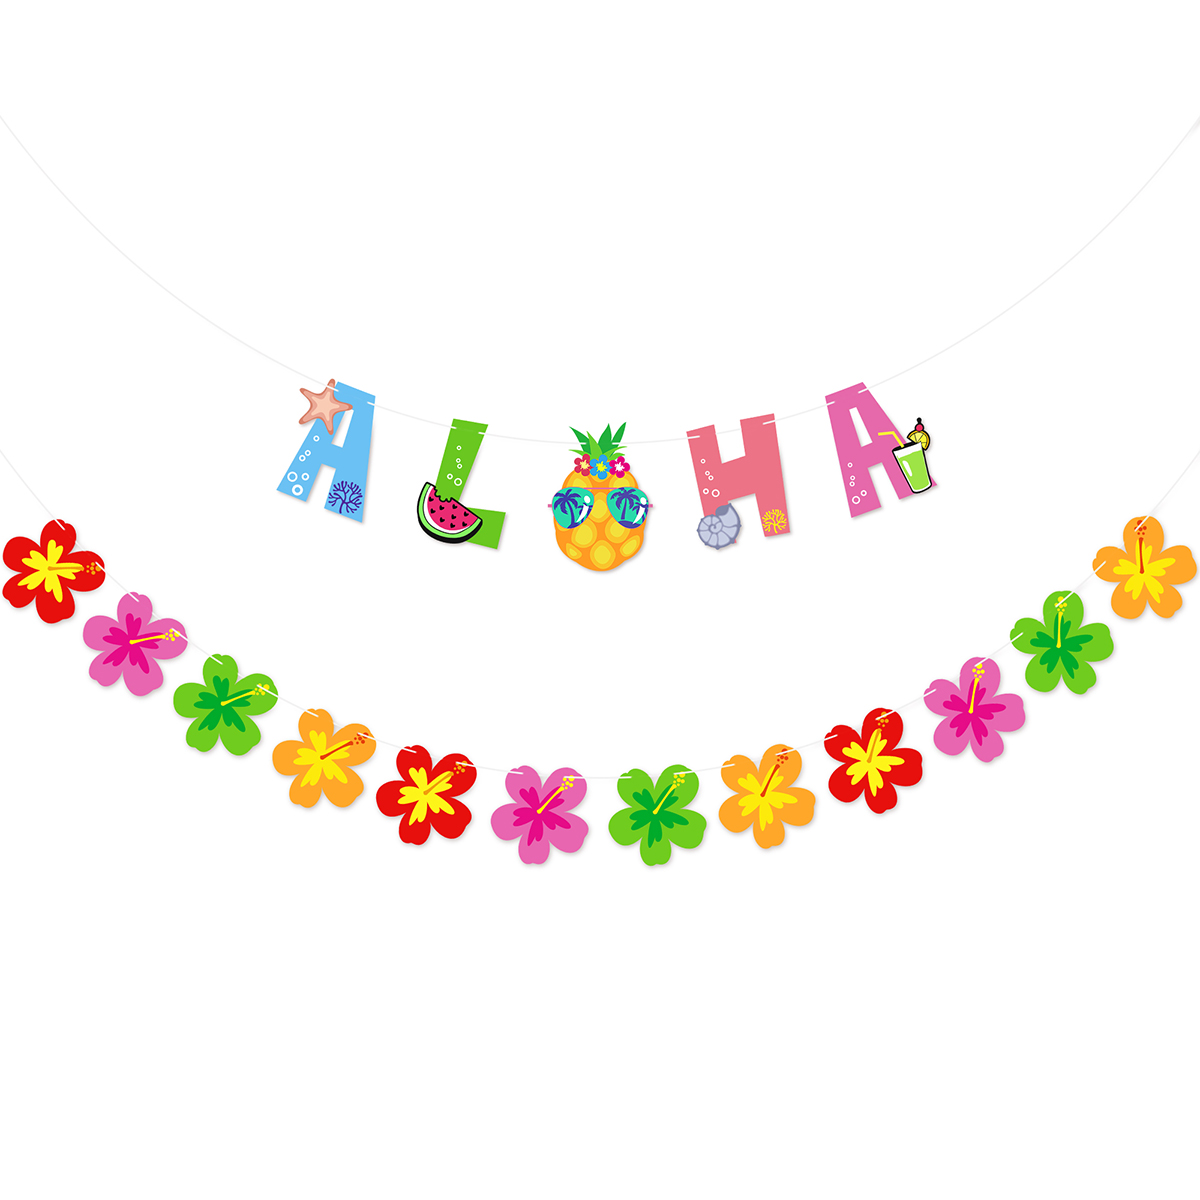 UNOMOR Summer ALOHA Banners Flowers Bunting Garland Backdrop Prop Decoration for Summer Luau Tropical Hawaiian Birthday Party Supplies